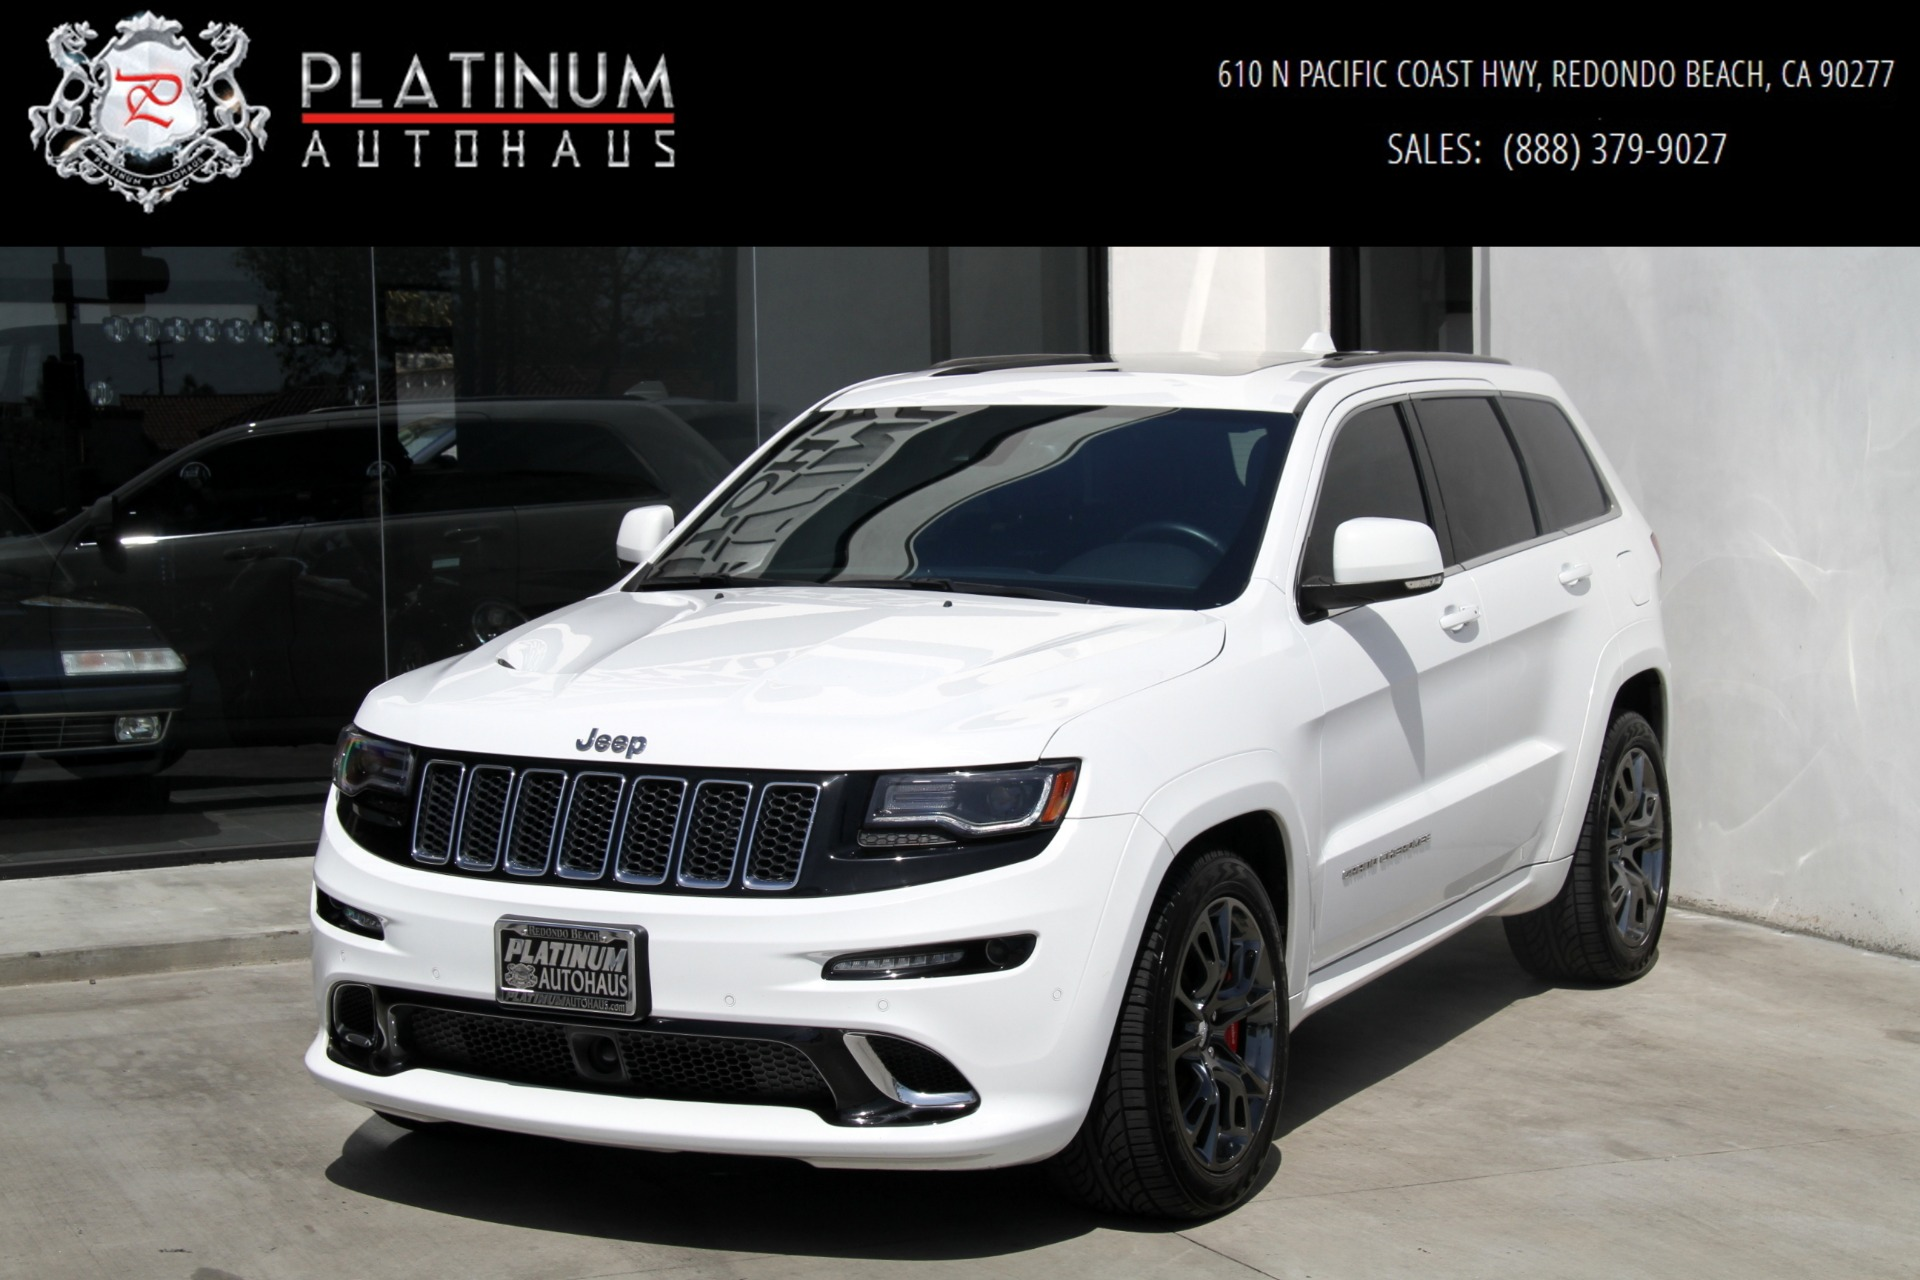 cars grand cherokee sale overview overland cargurus for pic jeep